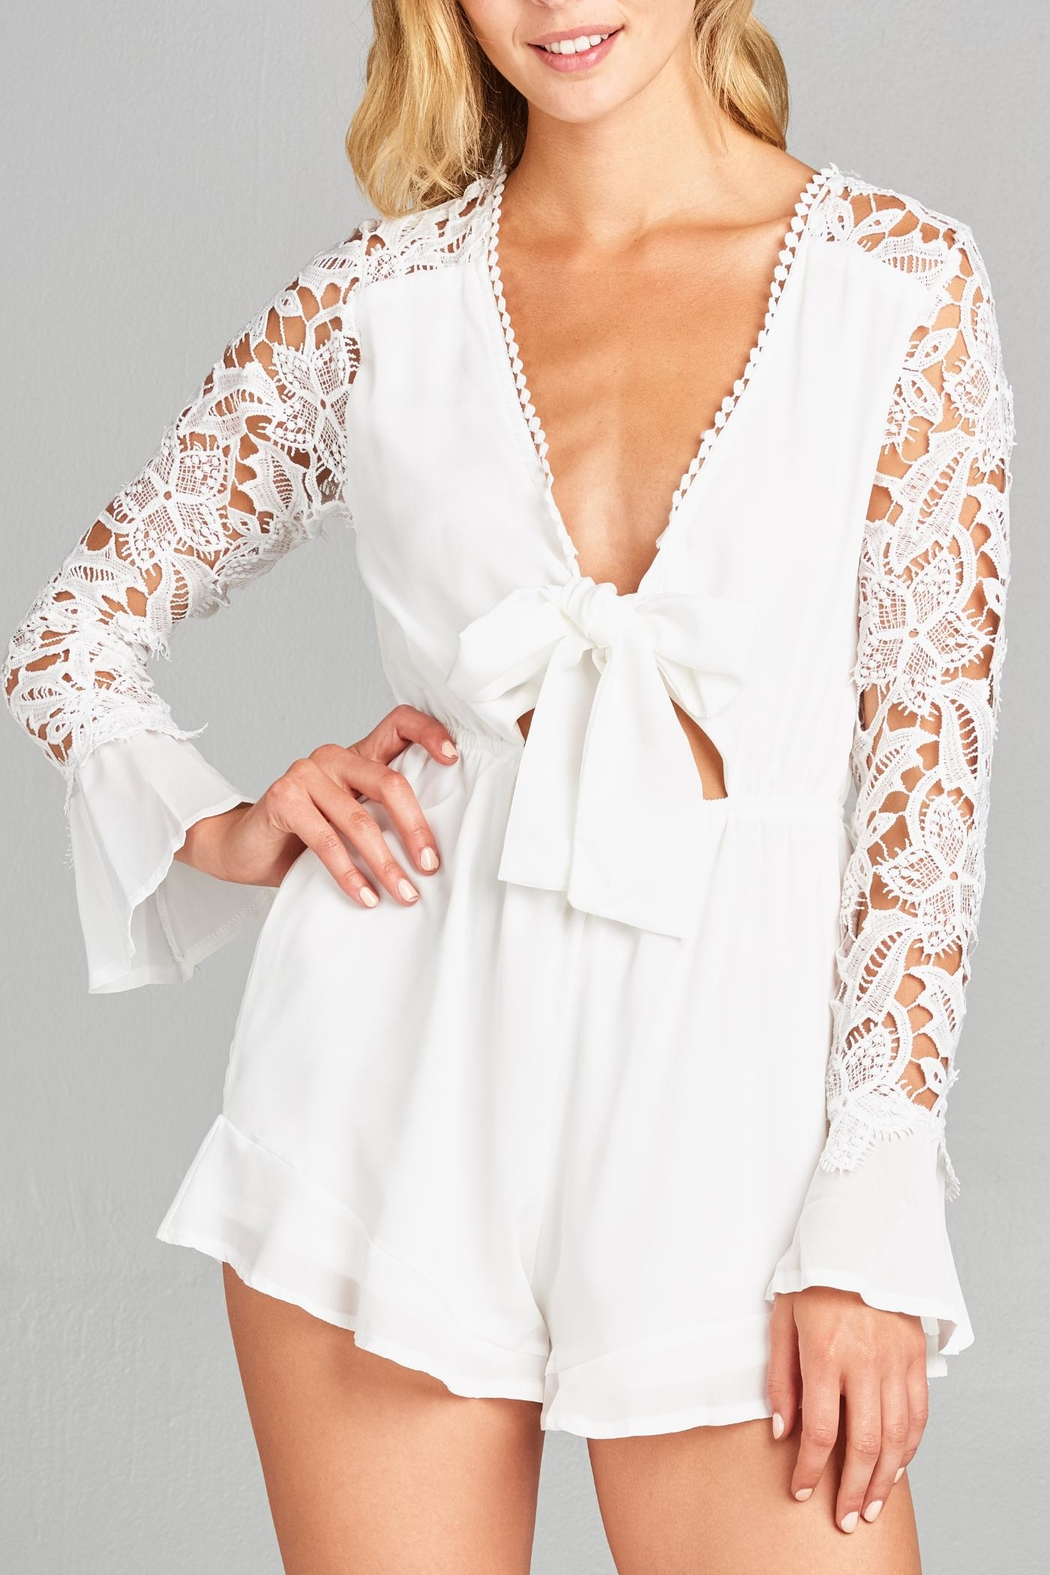 9617c25a4f50 Racine Floral Lace Romper from California by Racine Love — Shoptiques